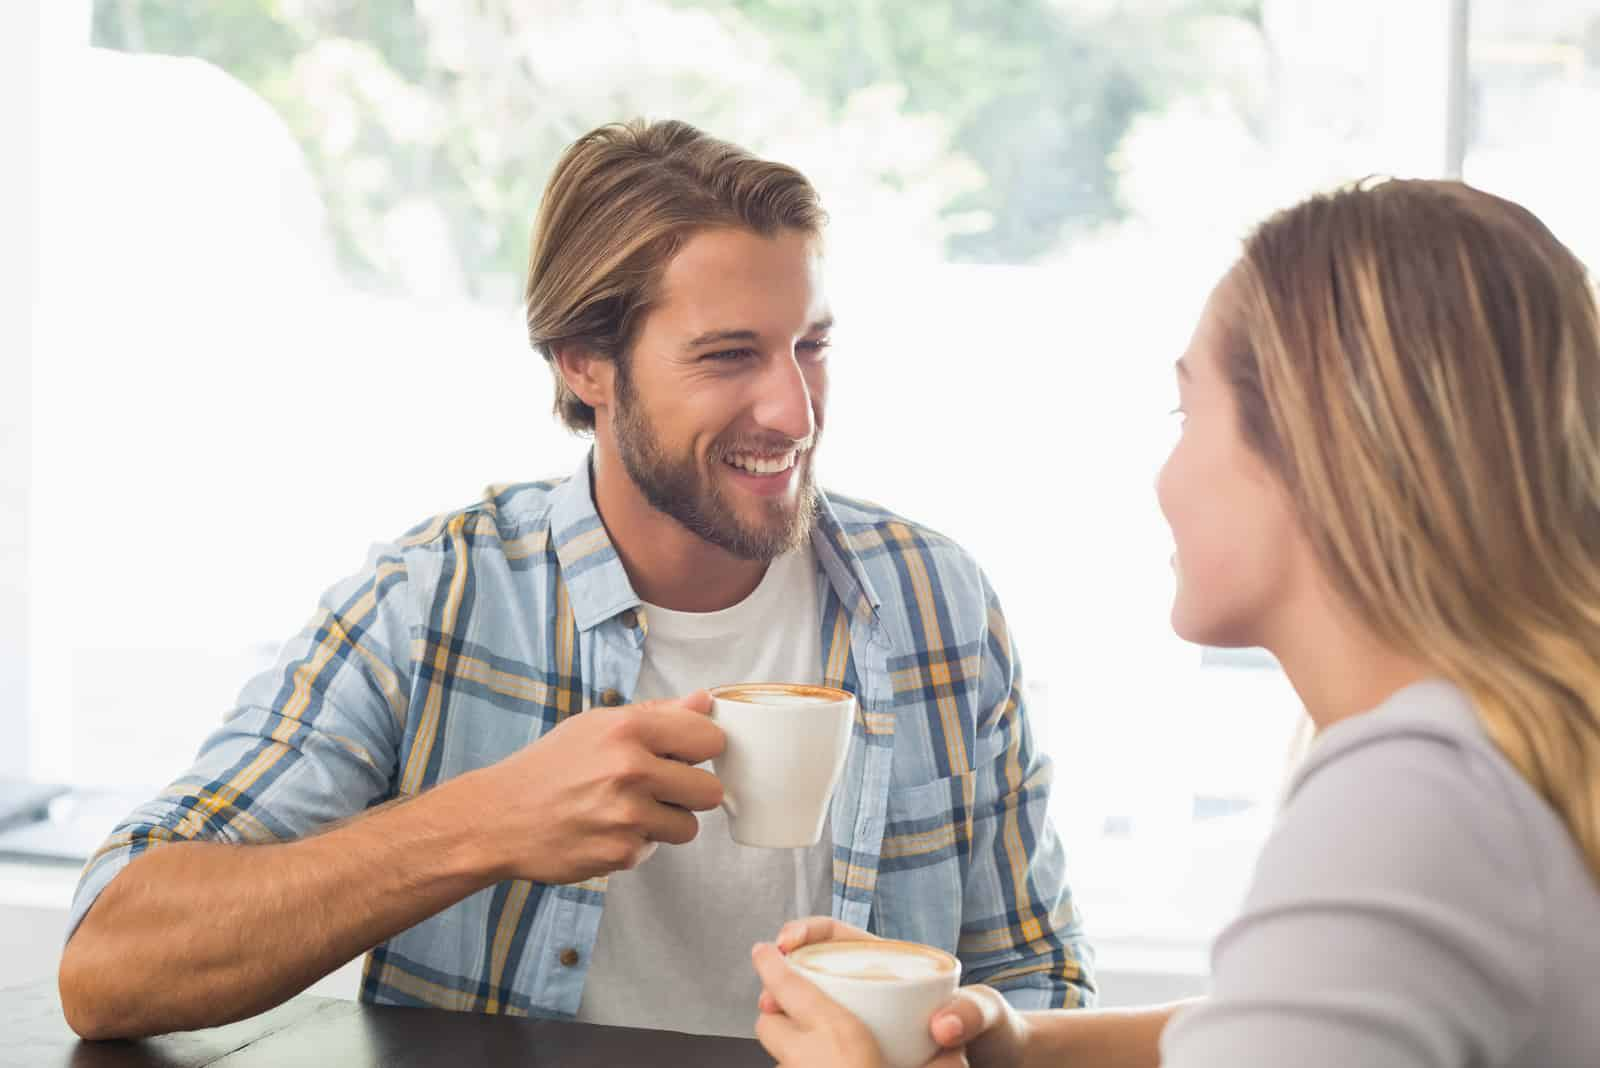 a man and a woman sit drinking coffee and laughing